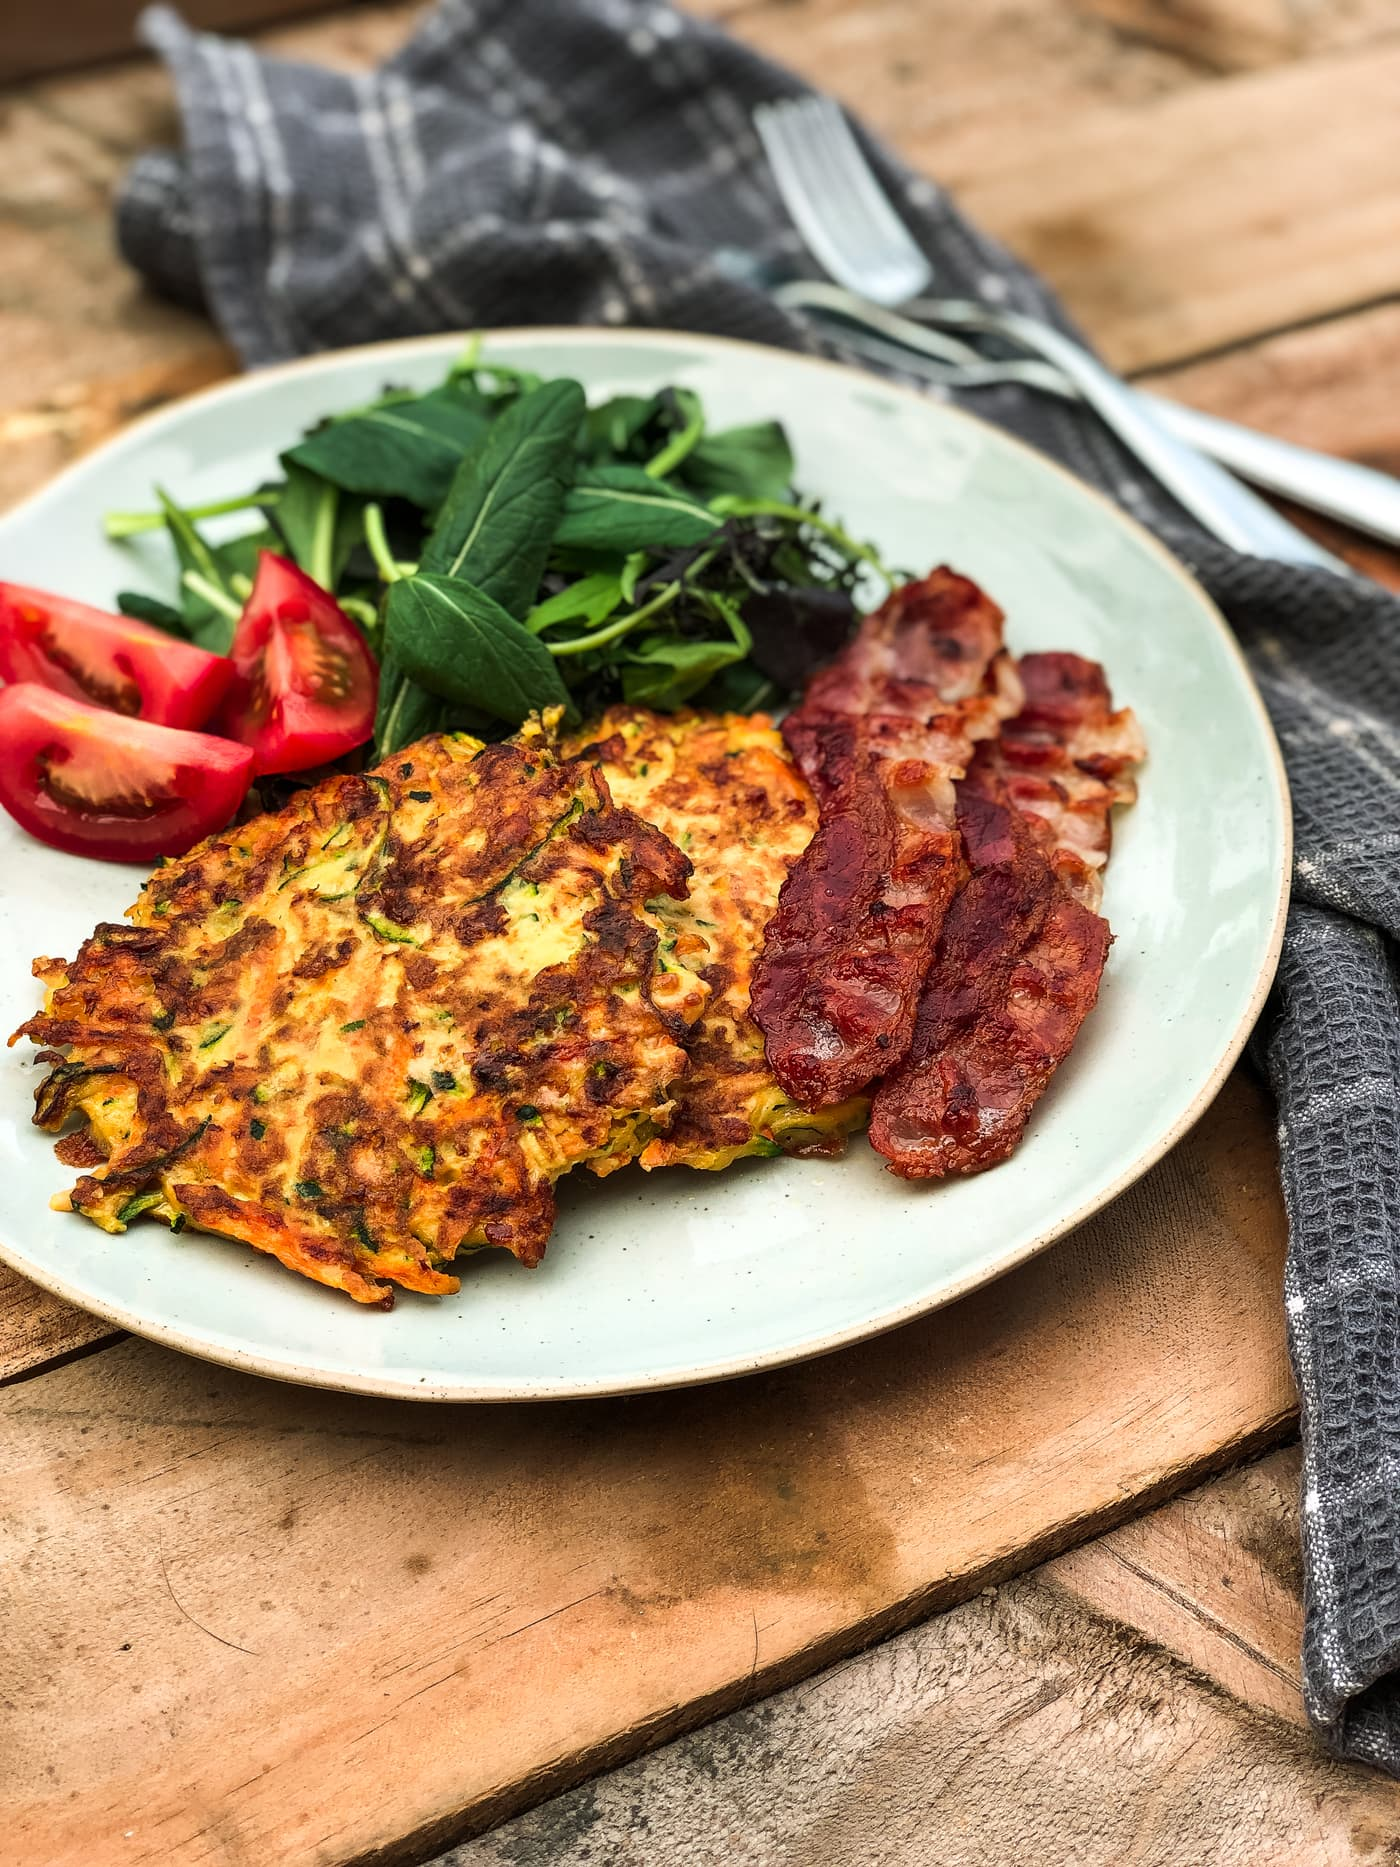 Courgette, Carrot and Bacon Fritters